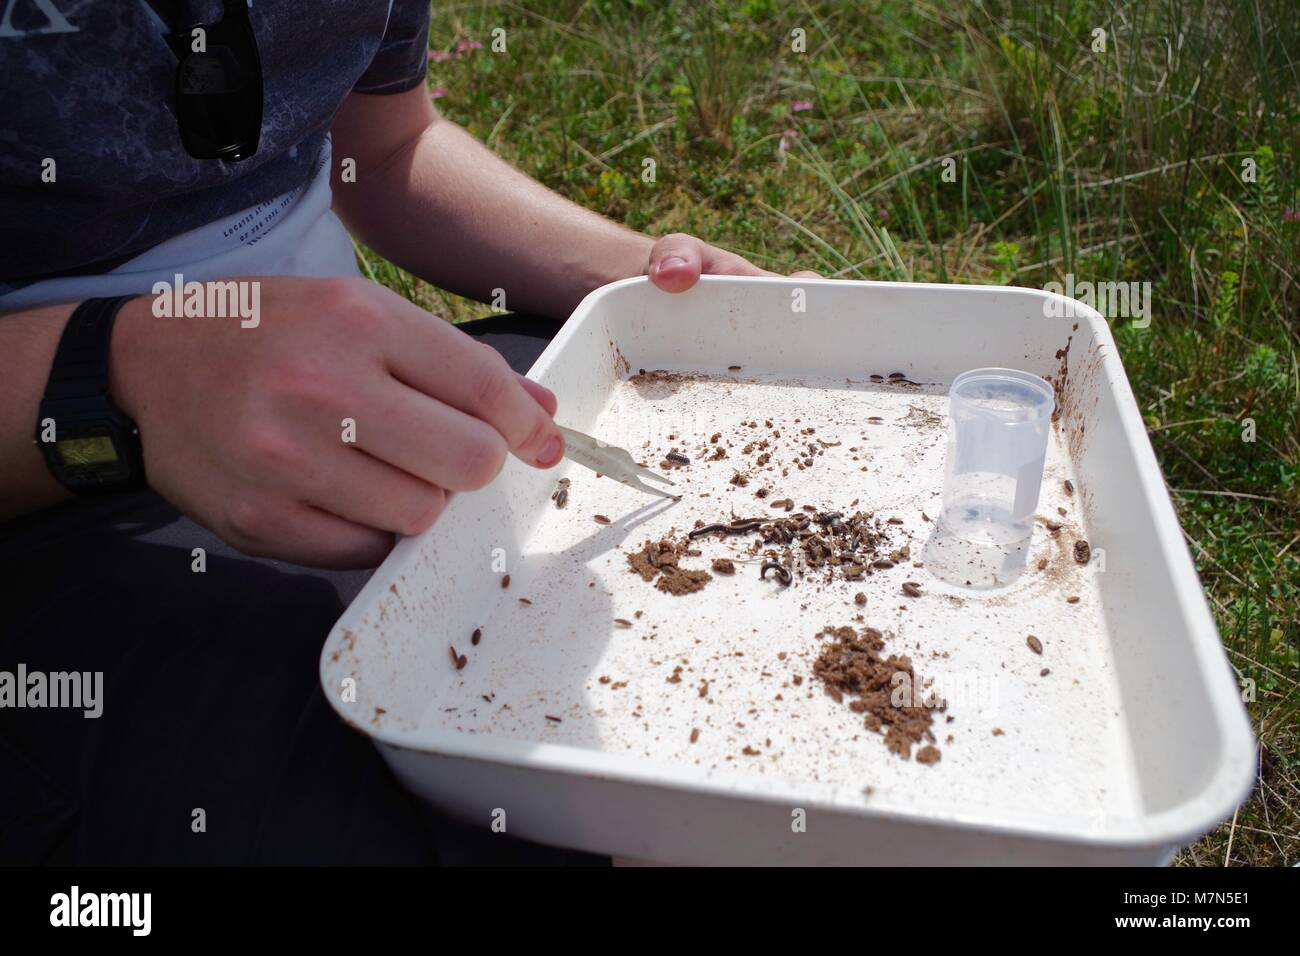 Ecology Student Collecting Primary Entomology Field Data, White Sample tray. Dawlish Warren, Devon, UK. July, 2017. Stock Photo